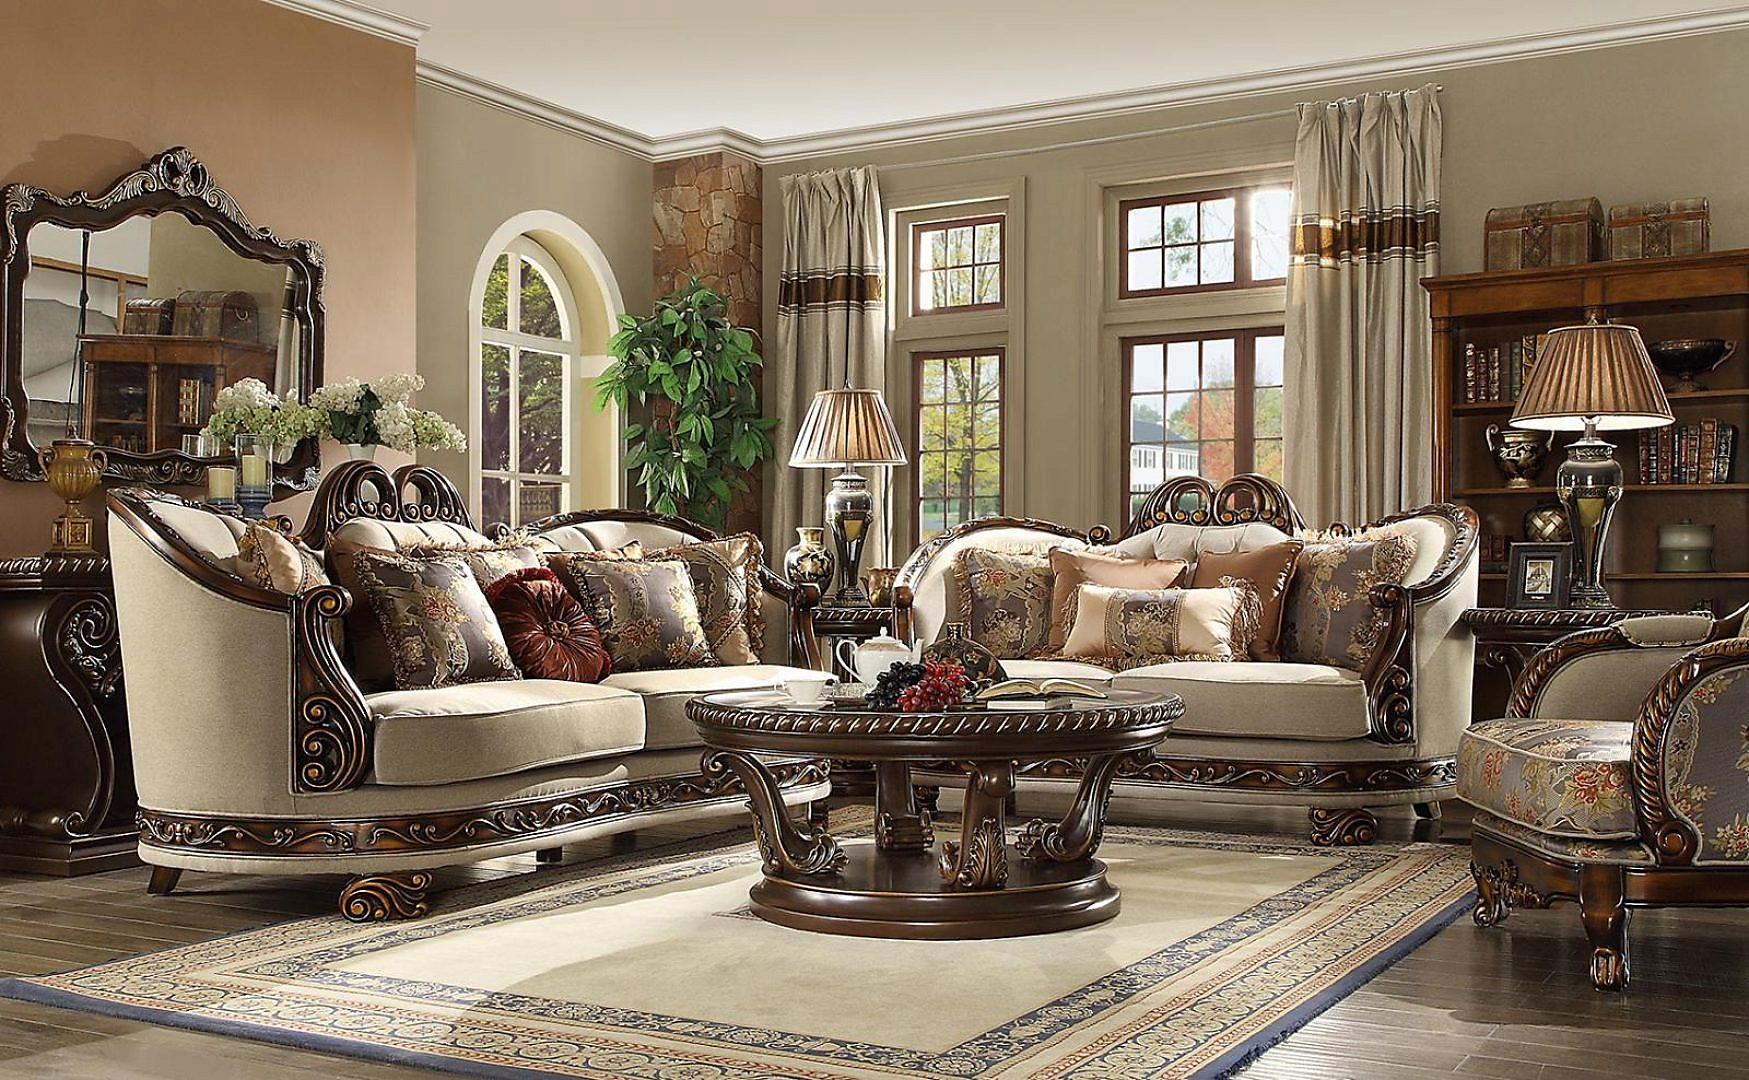 Traditional Hd-1623 Sofa Love Chair Coffee End Console Tables Mirror 7Pcs by Homey Design